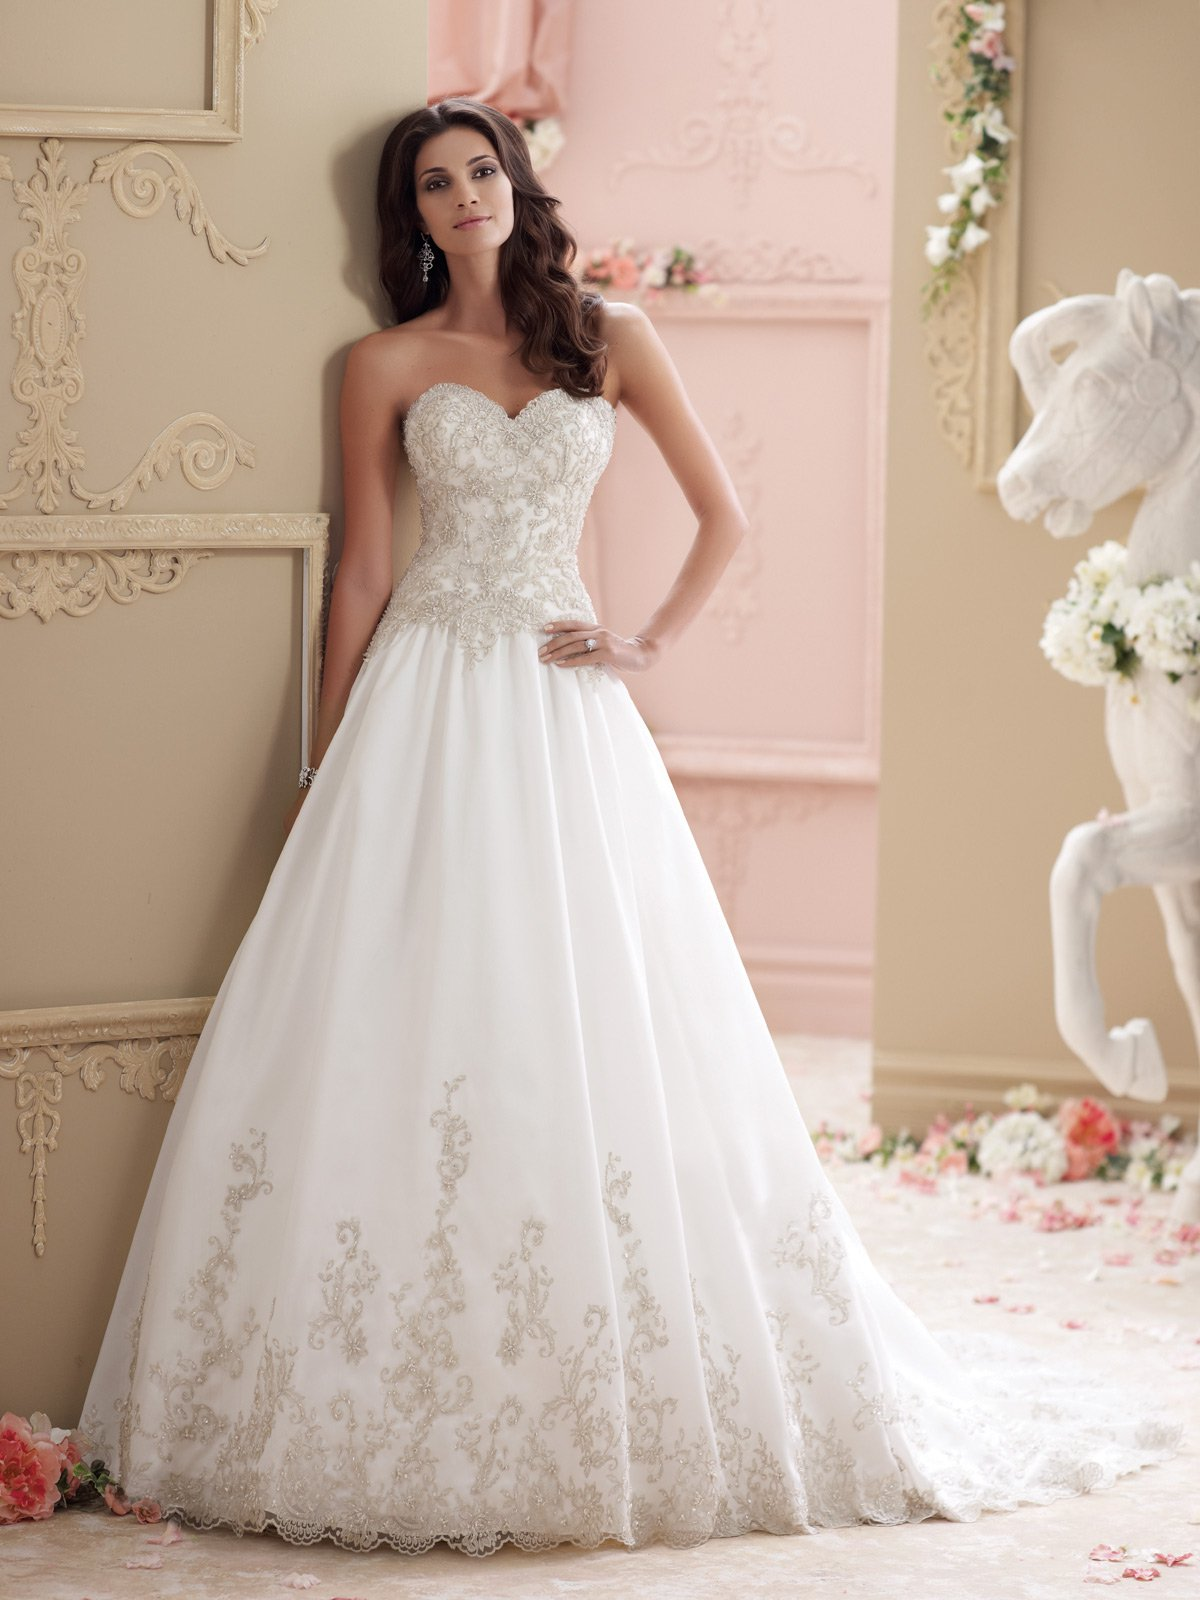 Best & Perfect Wedding Dress